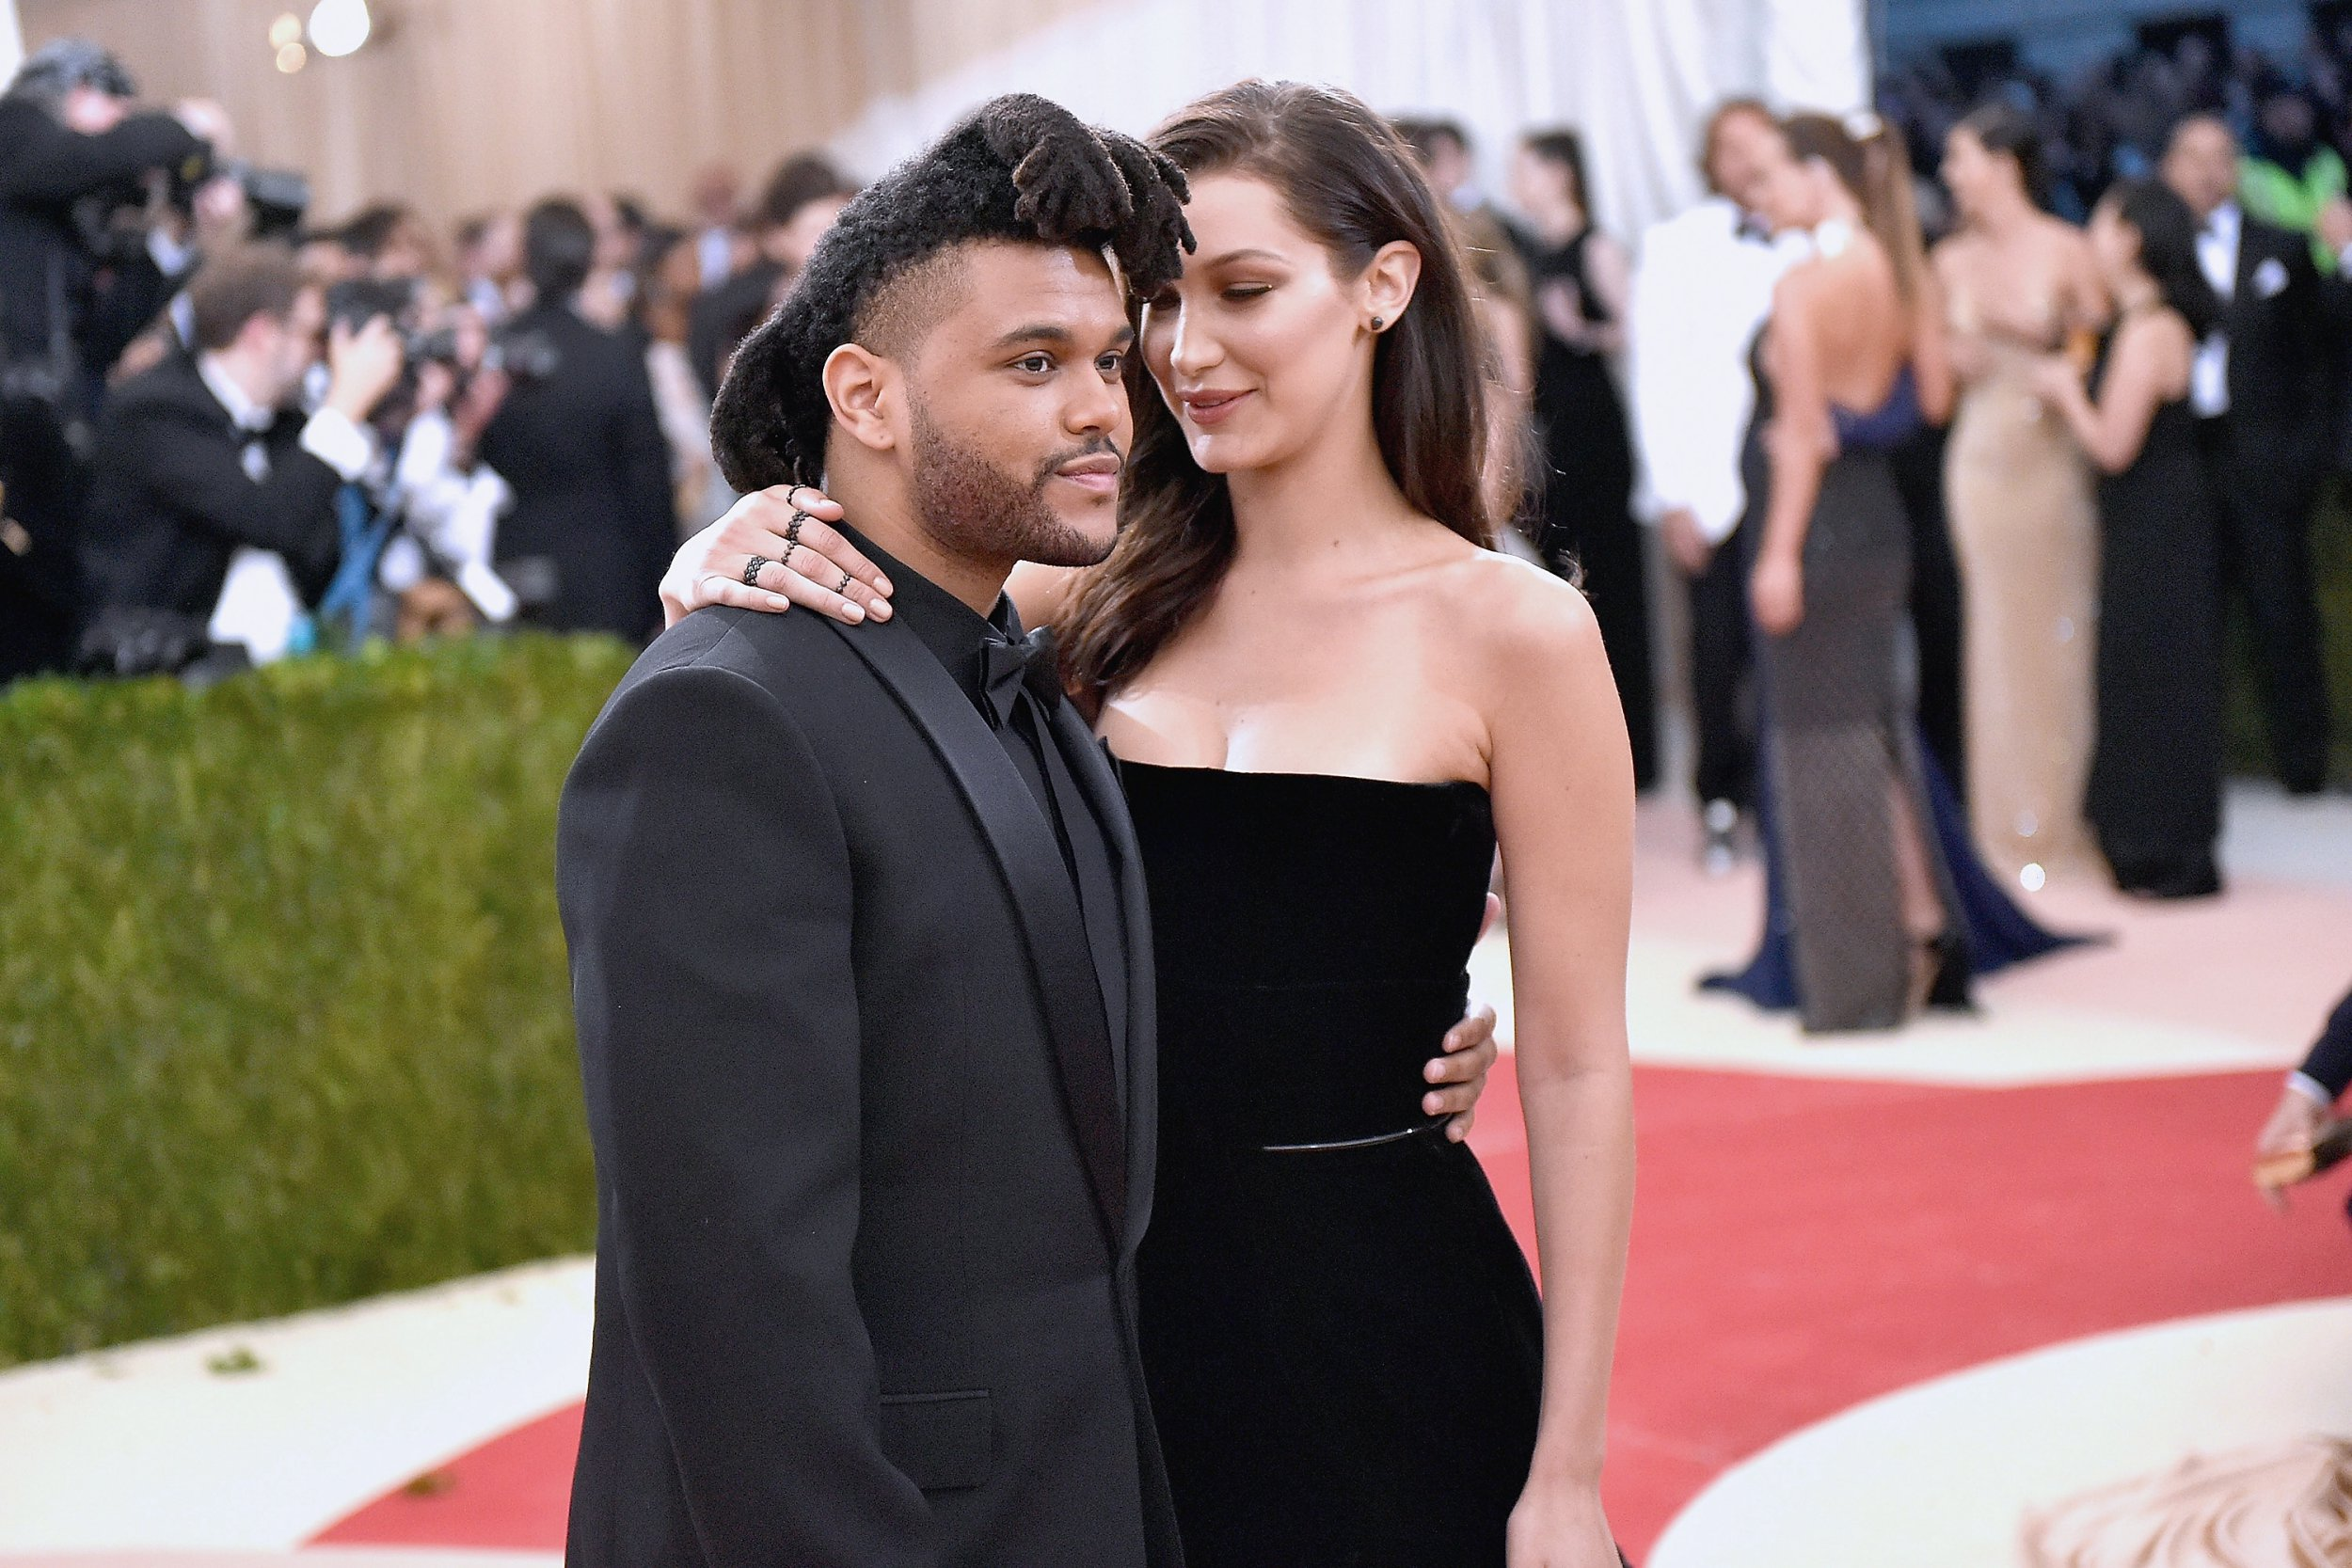 The Weeknd and Bella Hadid are on the verge of romance again